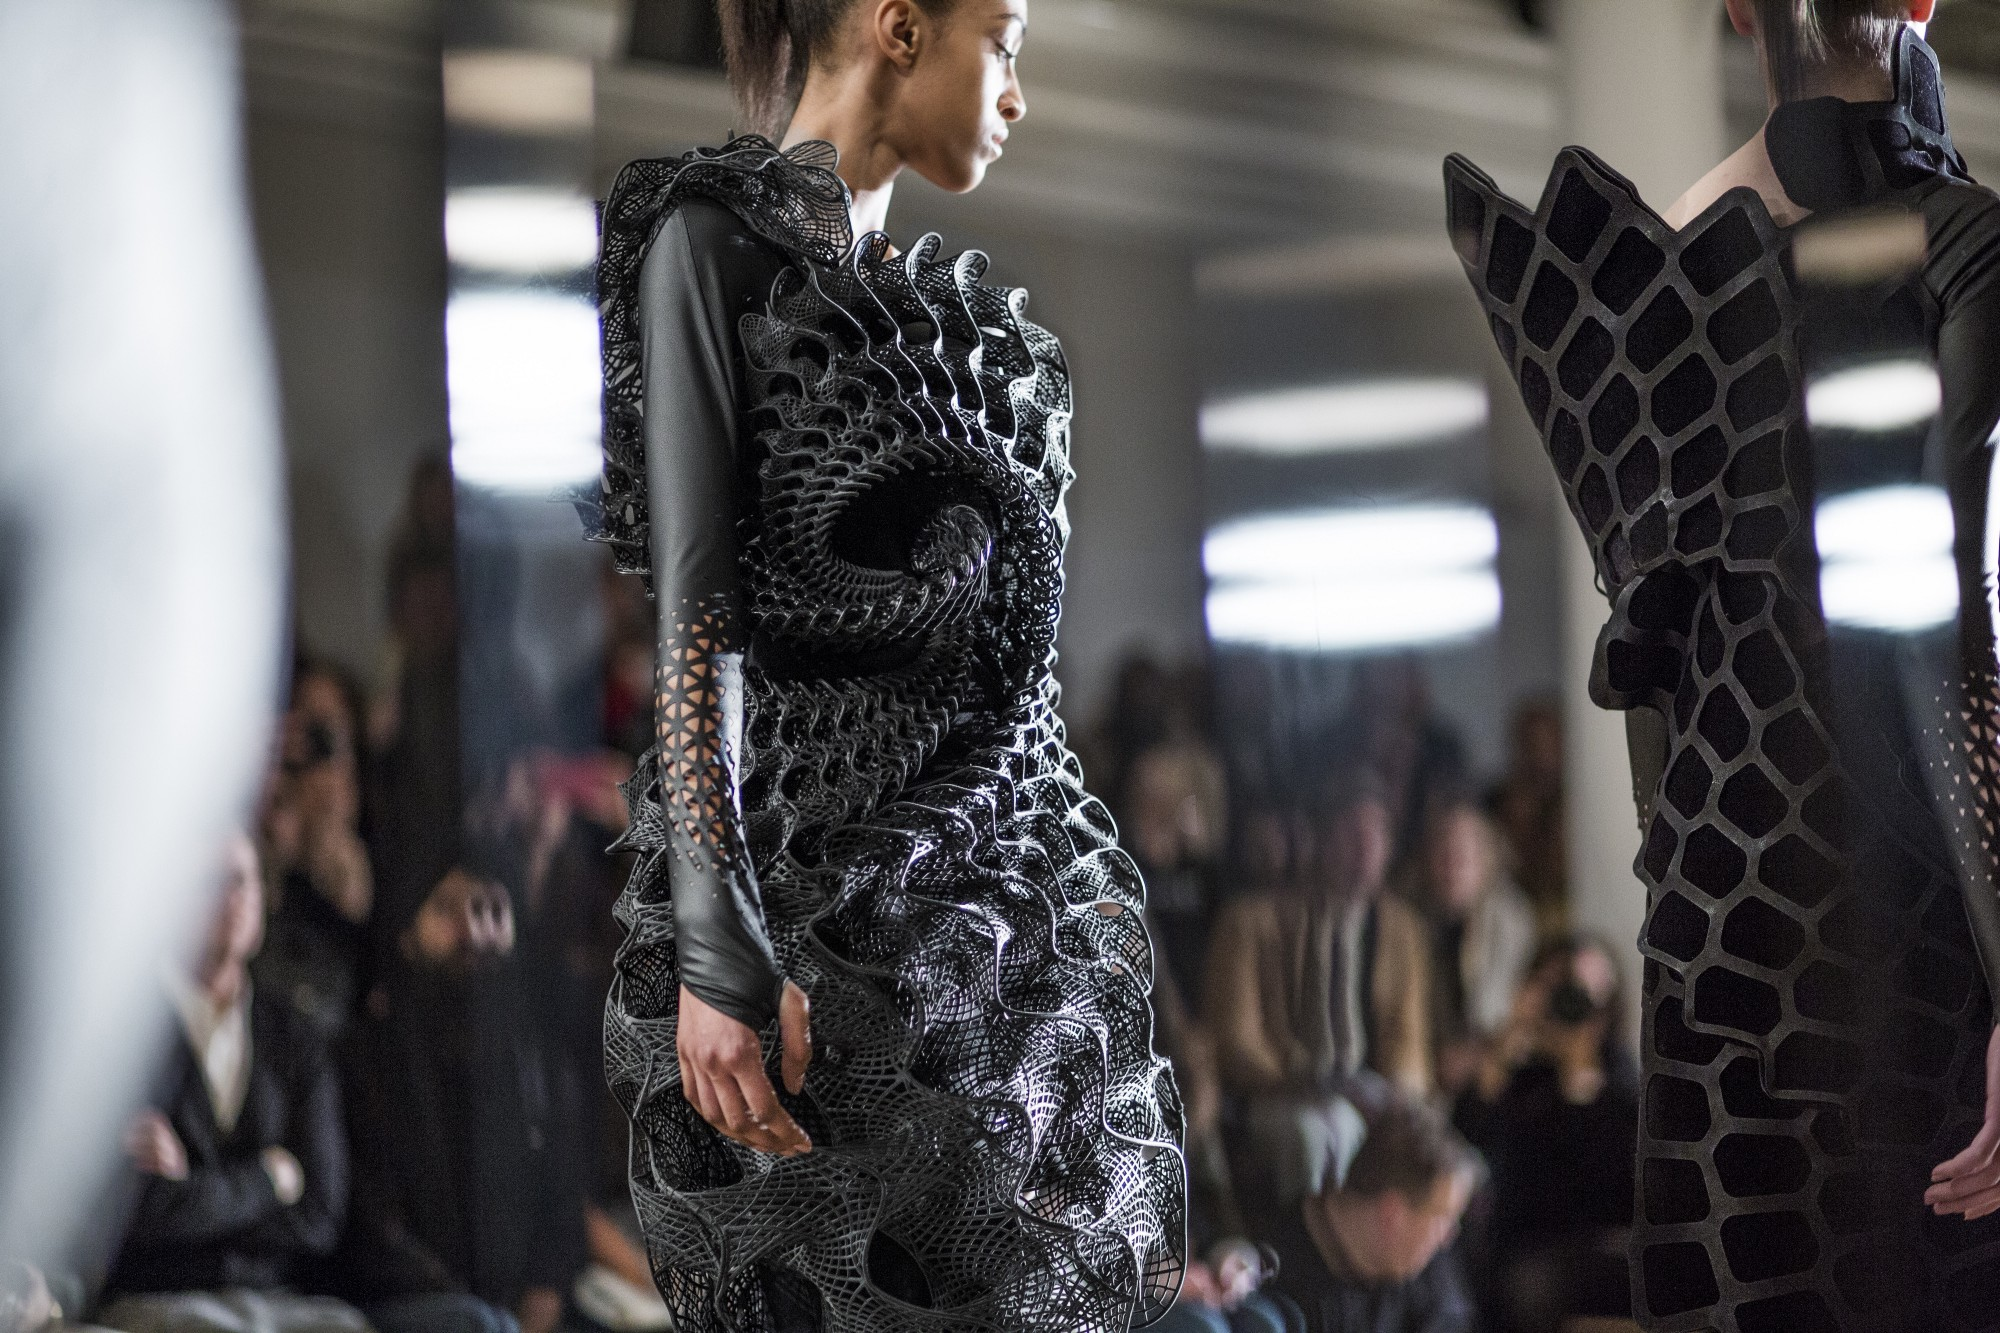 History of 3D printed clothing: from fragile figured constructions to flamboyant armor